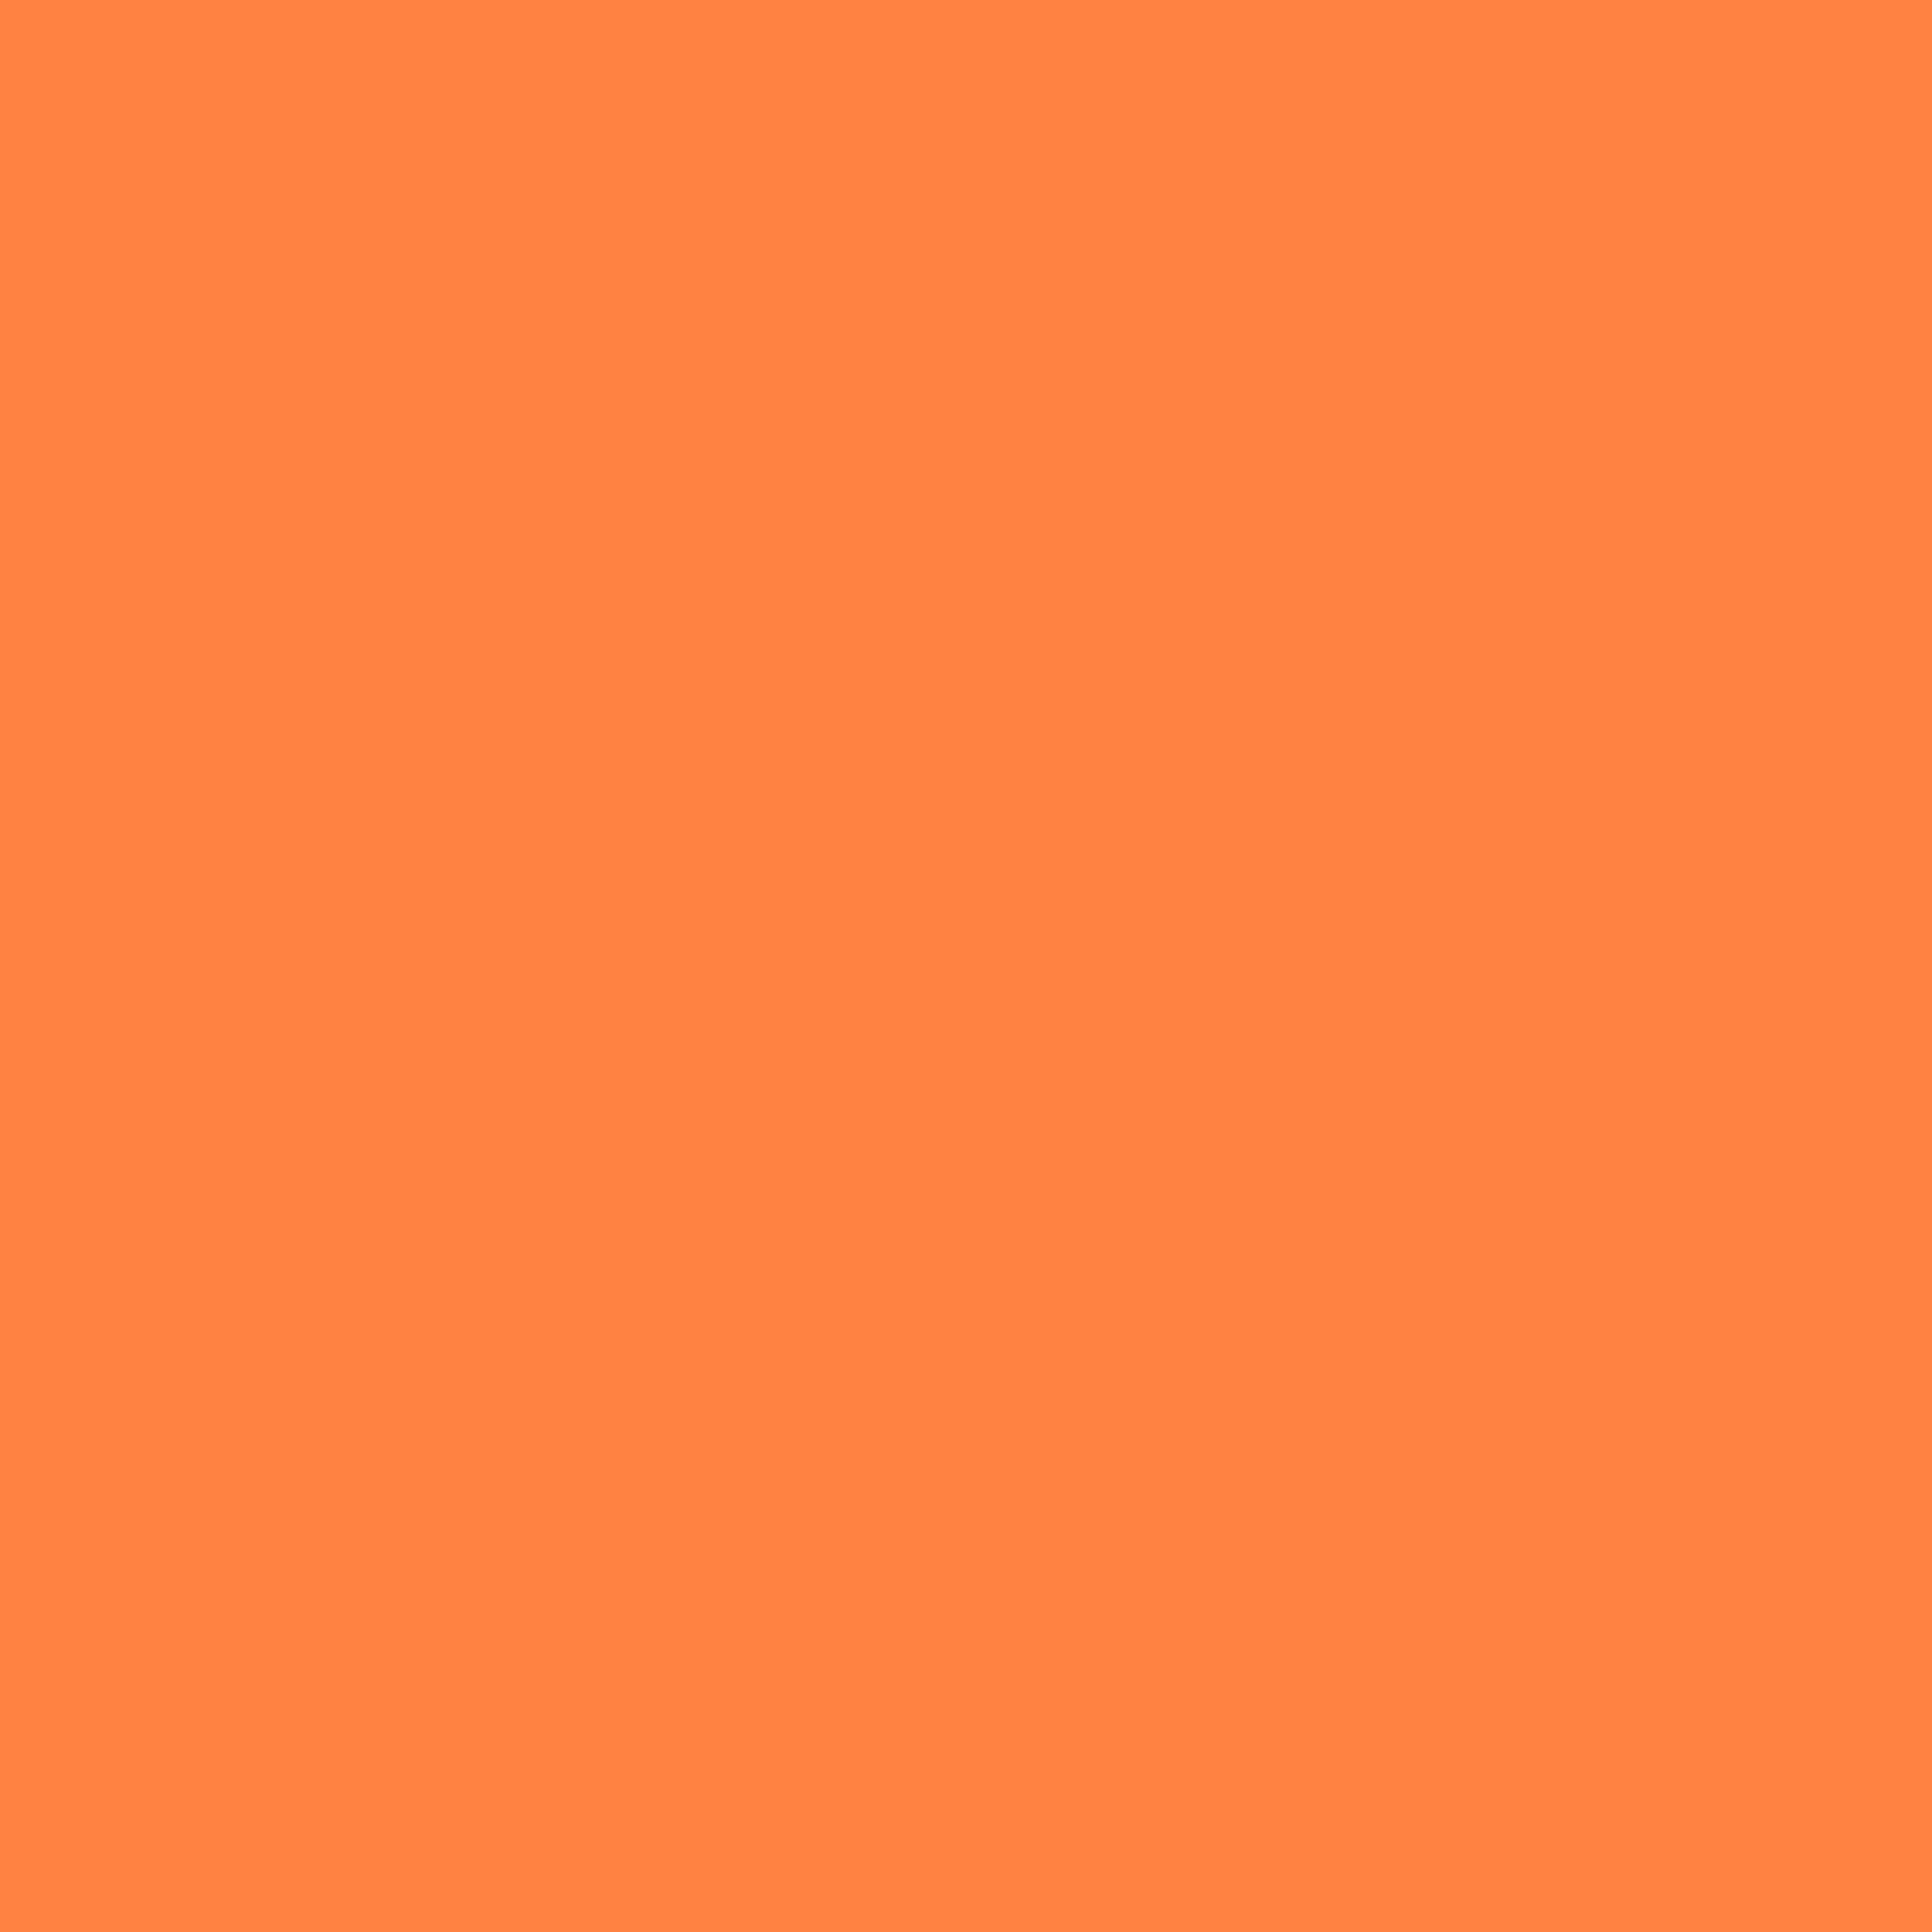 2732x2732 Mango Tango Solid Color Background